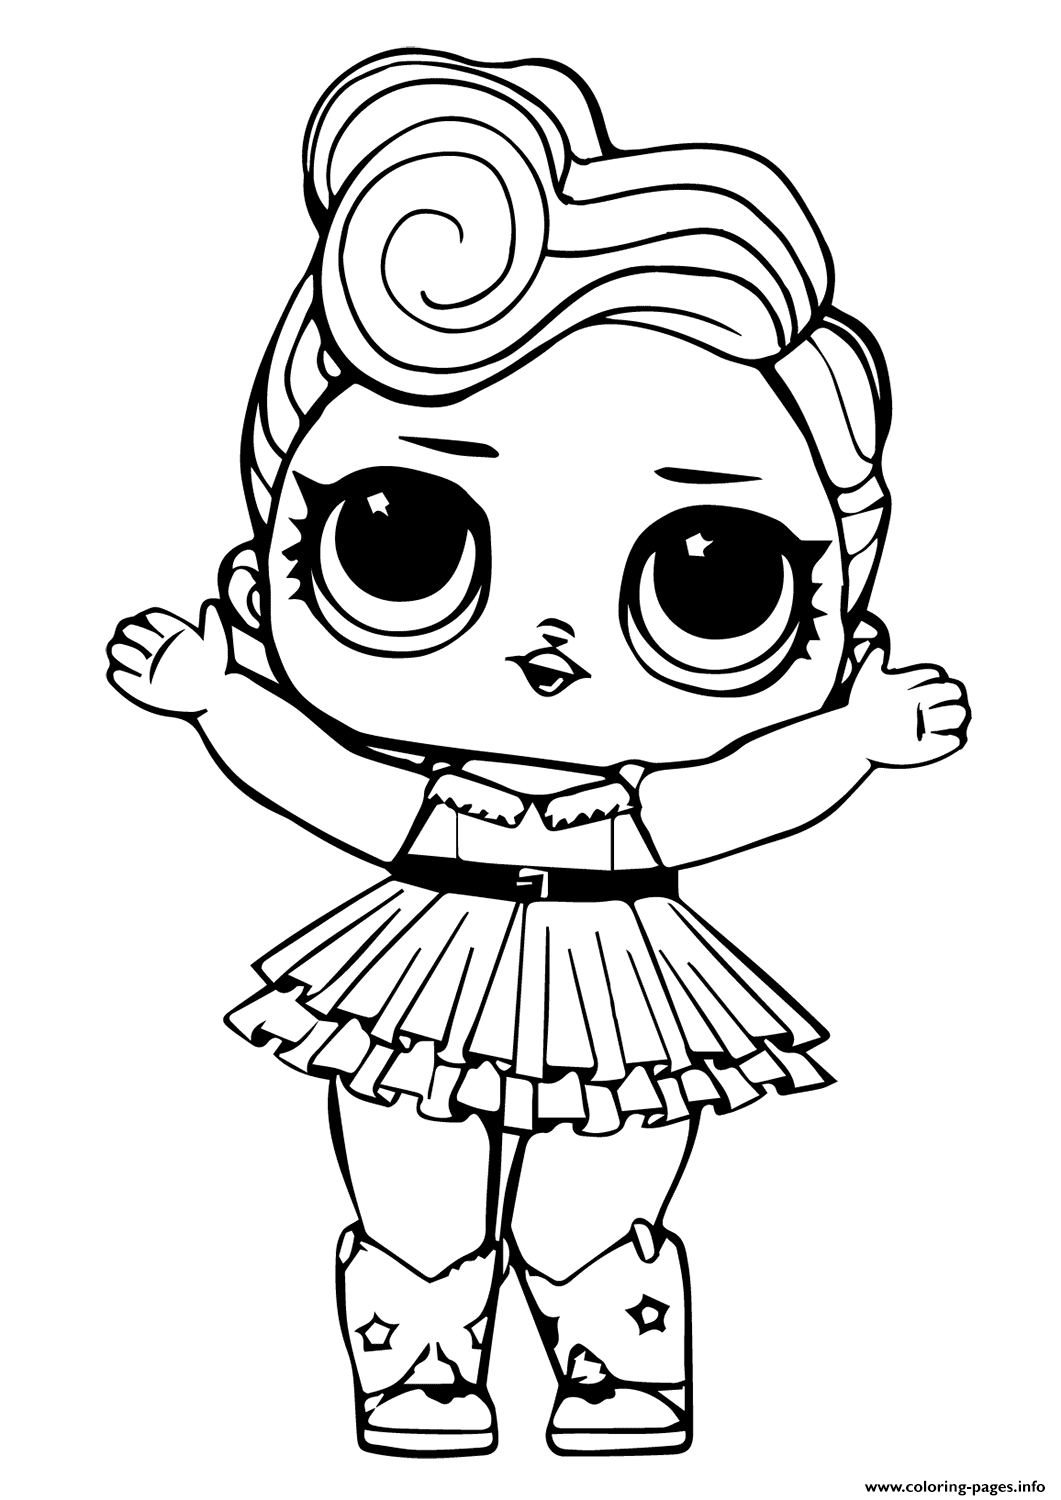 Leading Baby From Lol Surprise Coloring Pages Coloring And Drawing